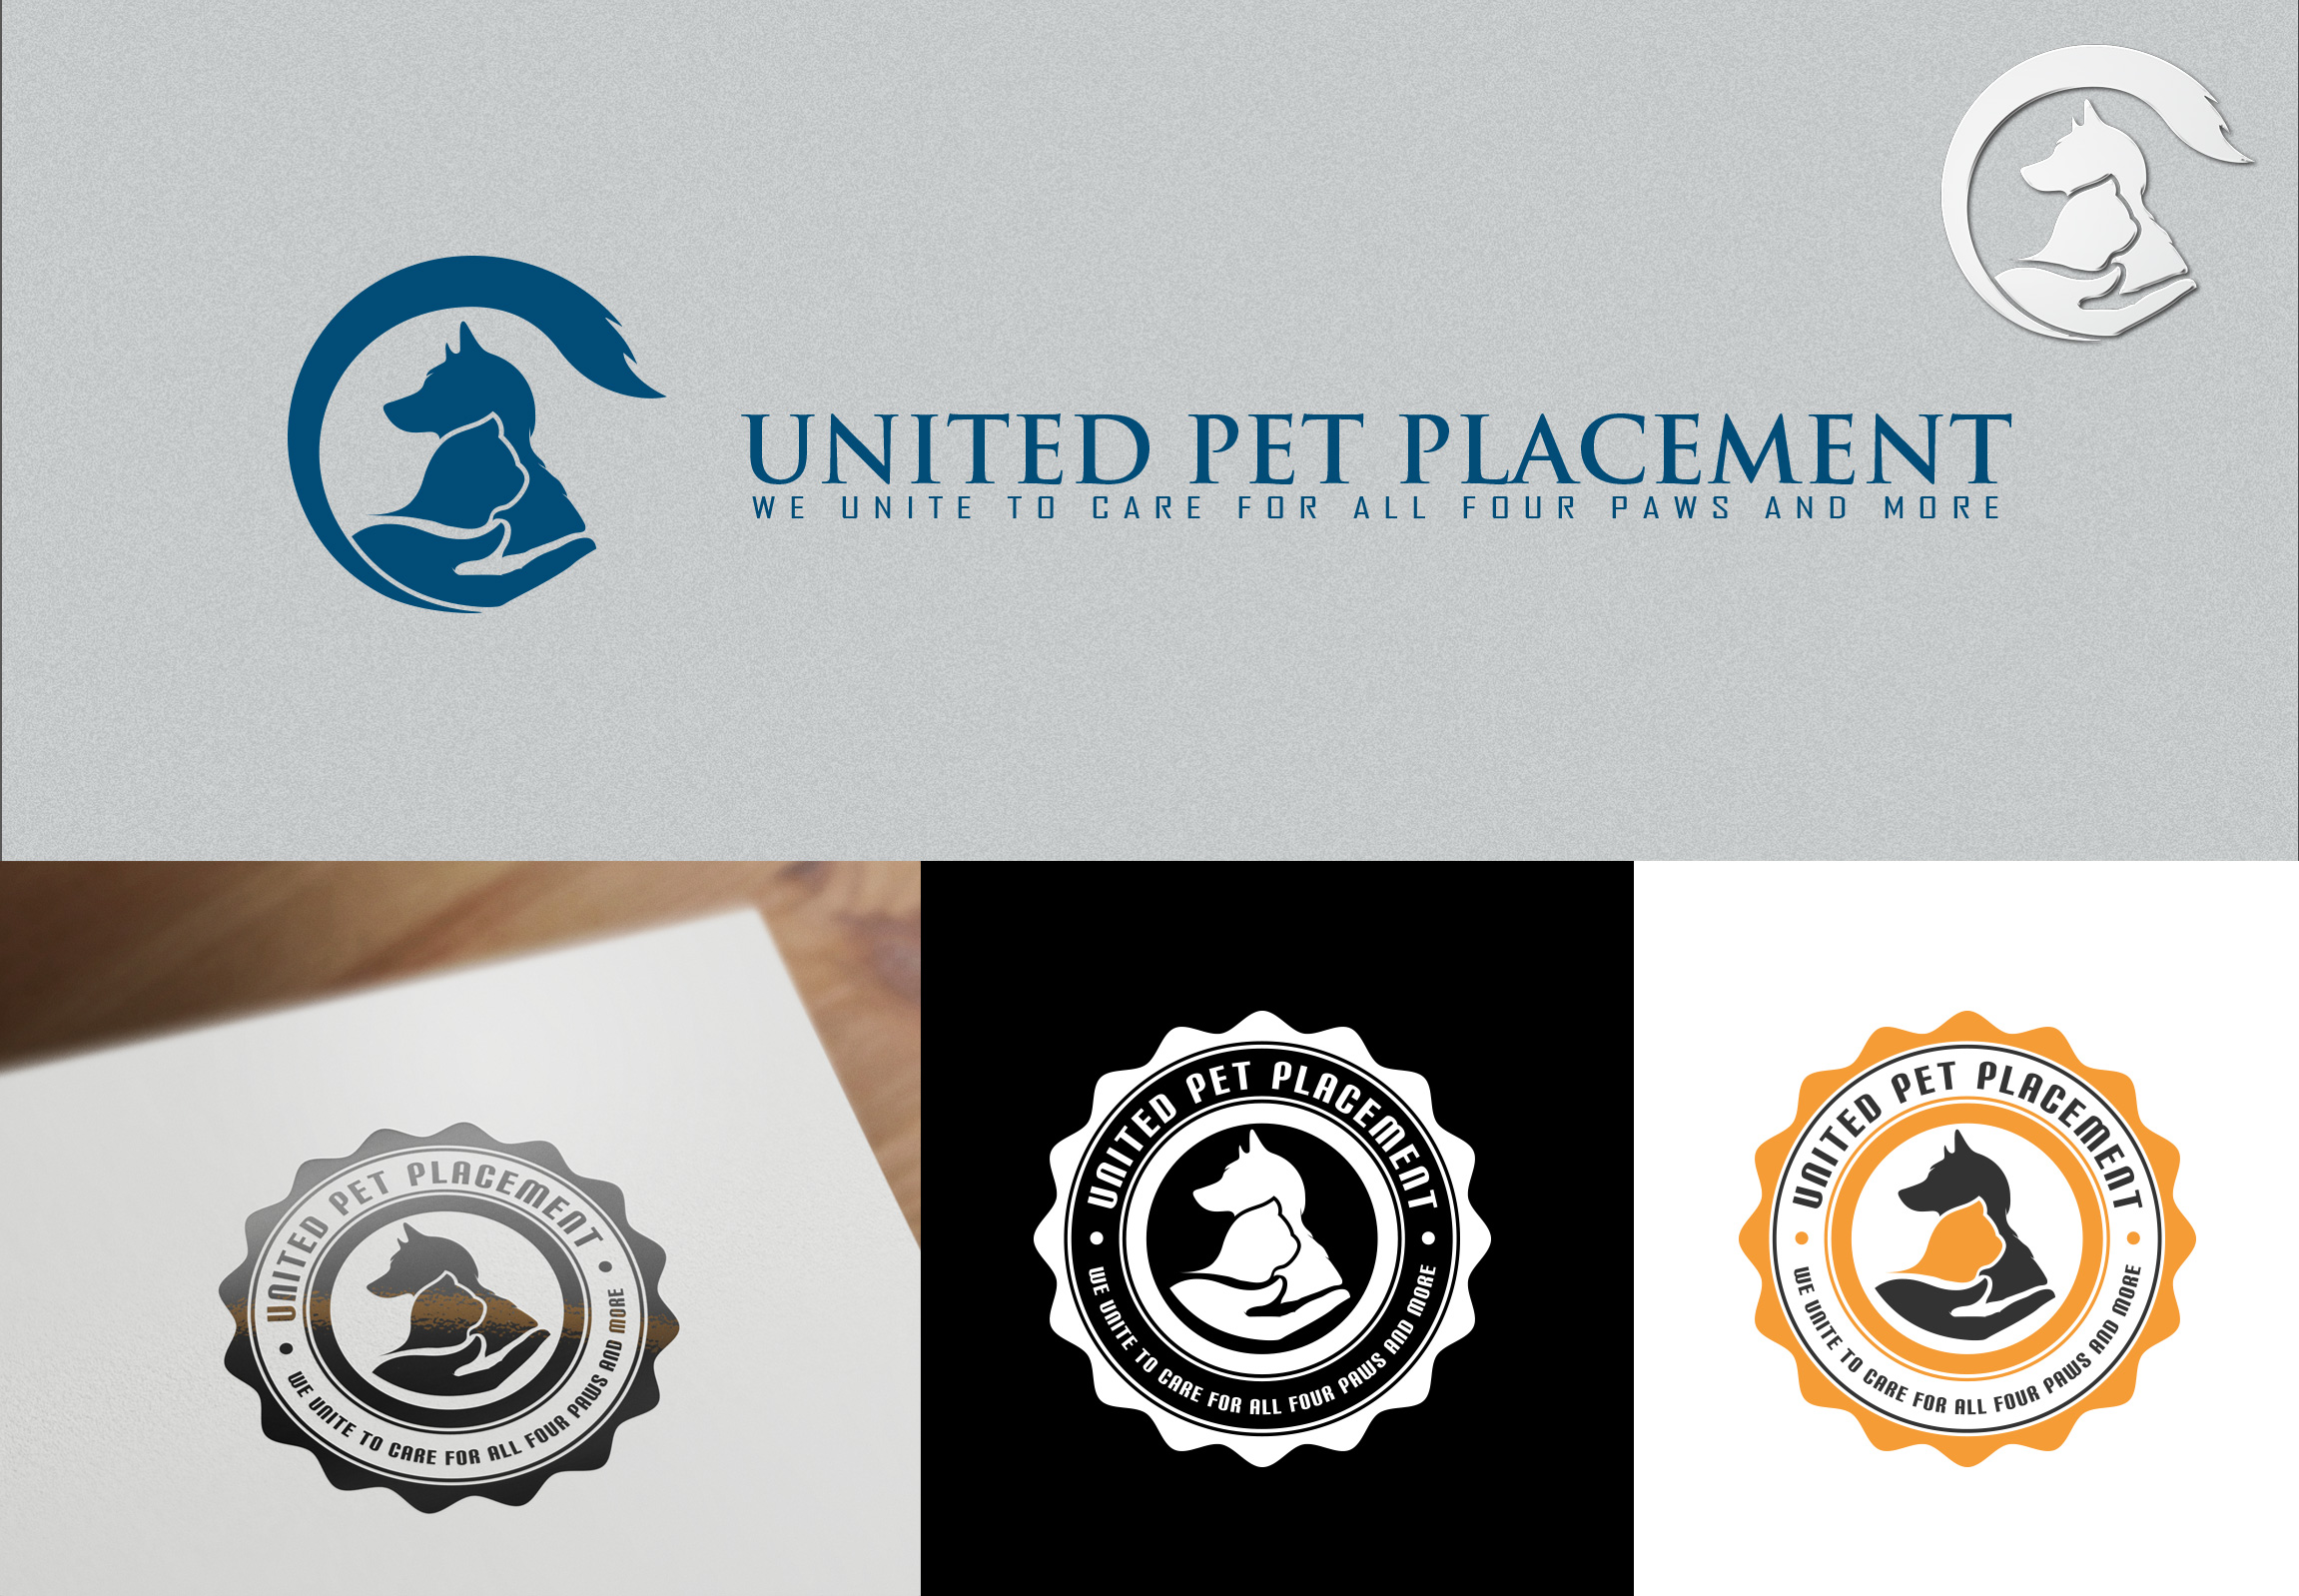 Logo Design by olii - Entry No. 46 in the Logo Design Contest Artistic Logo Design for united pet placement.